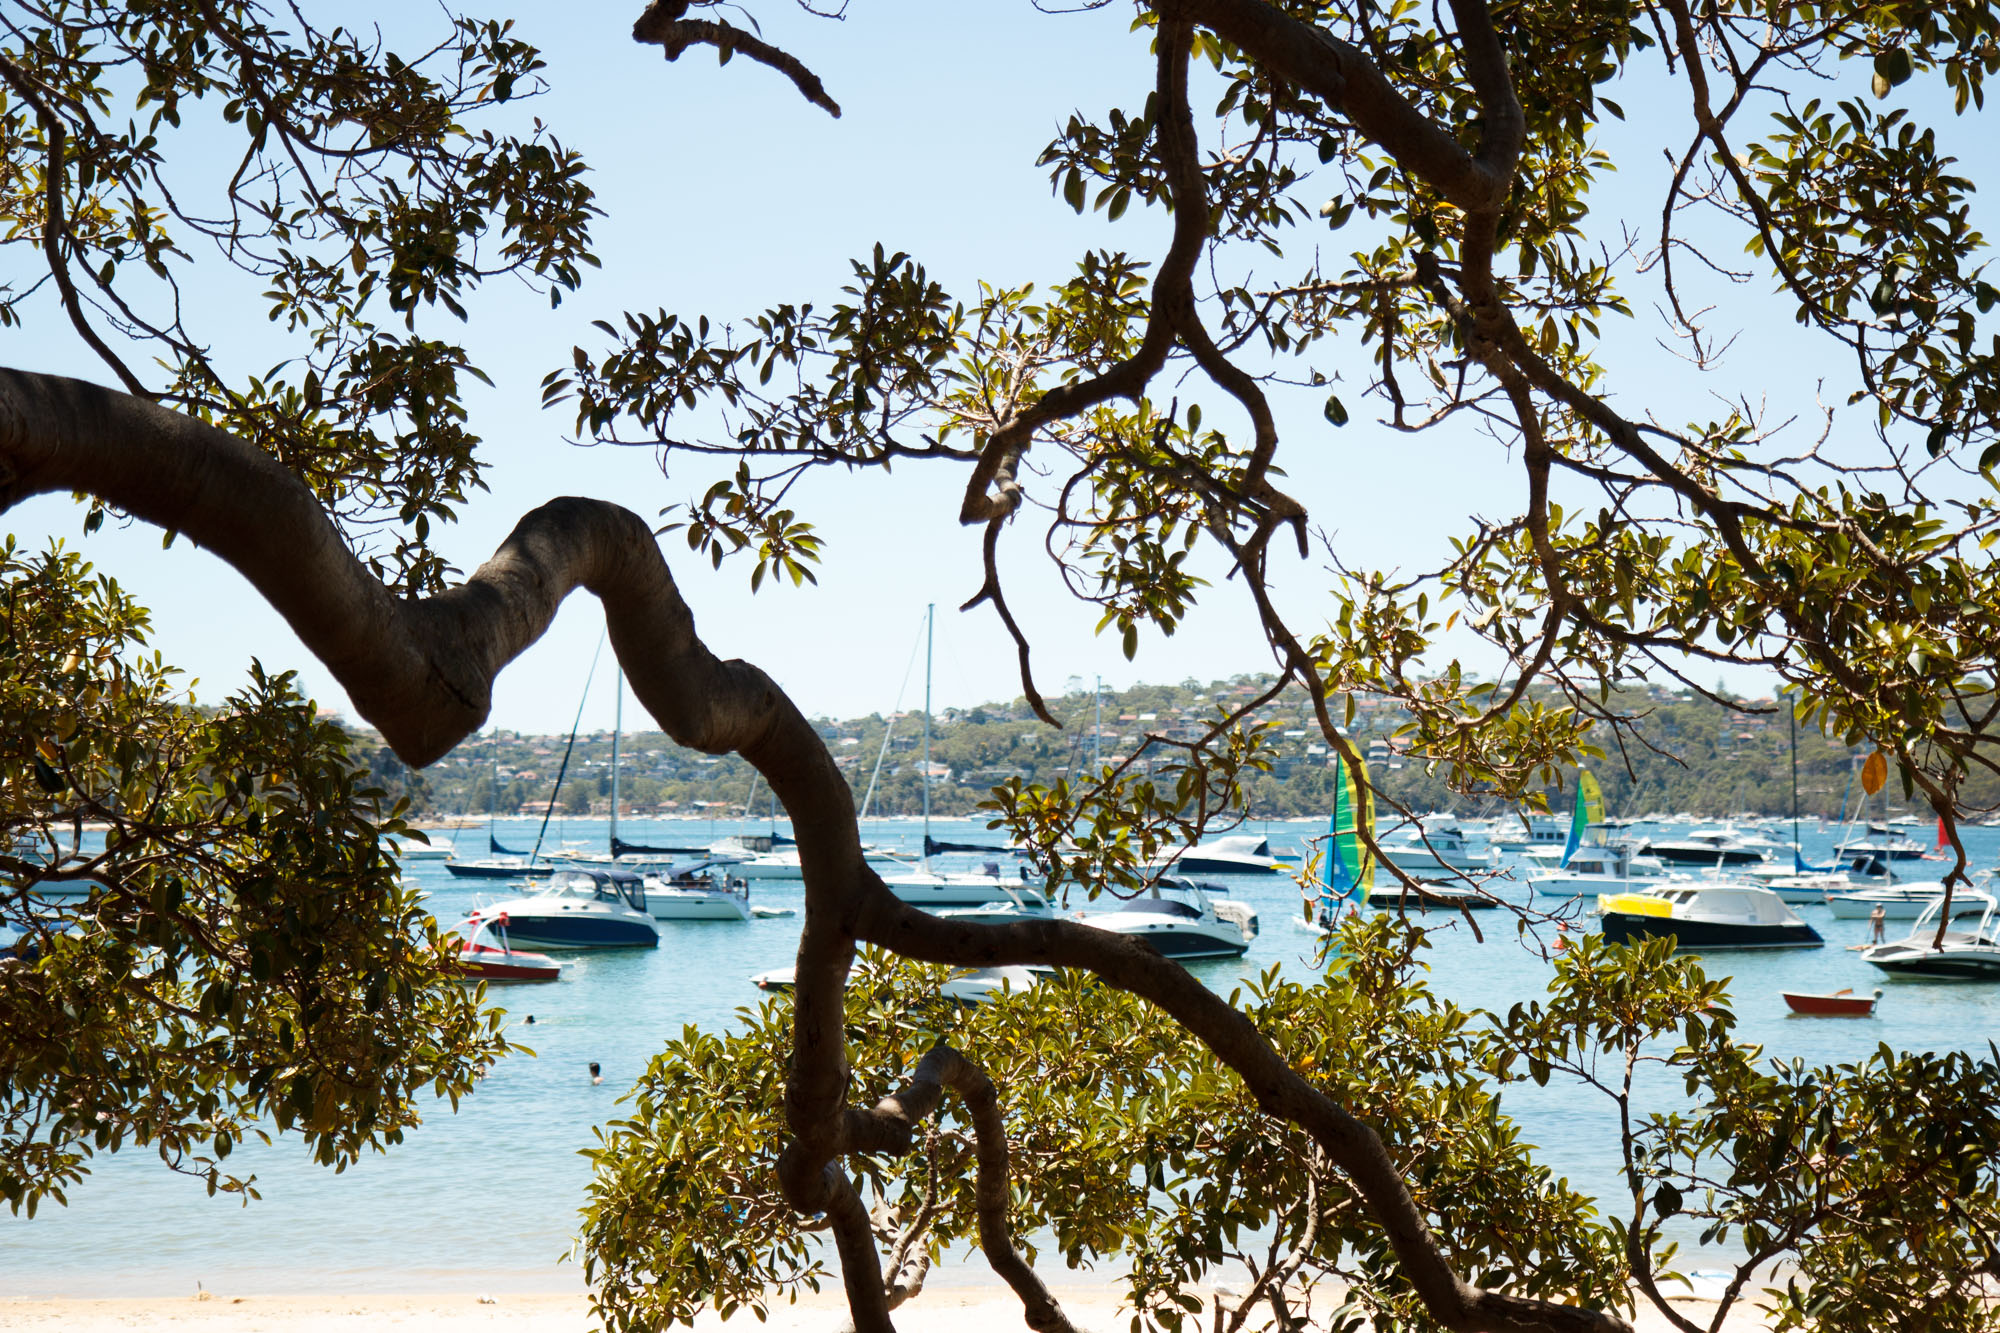 Boathouse Balmoral Beach | Balmoral Travel Guide | Sydney Travel Tips | Discover The Boathouse, a nautical lovers dream in Sydney, Australia.